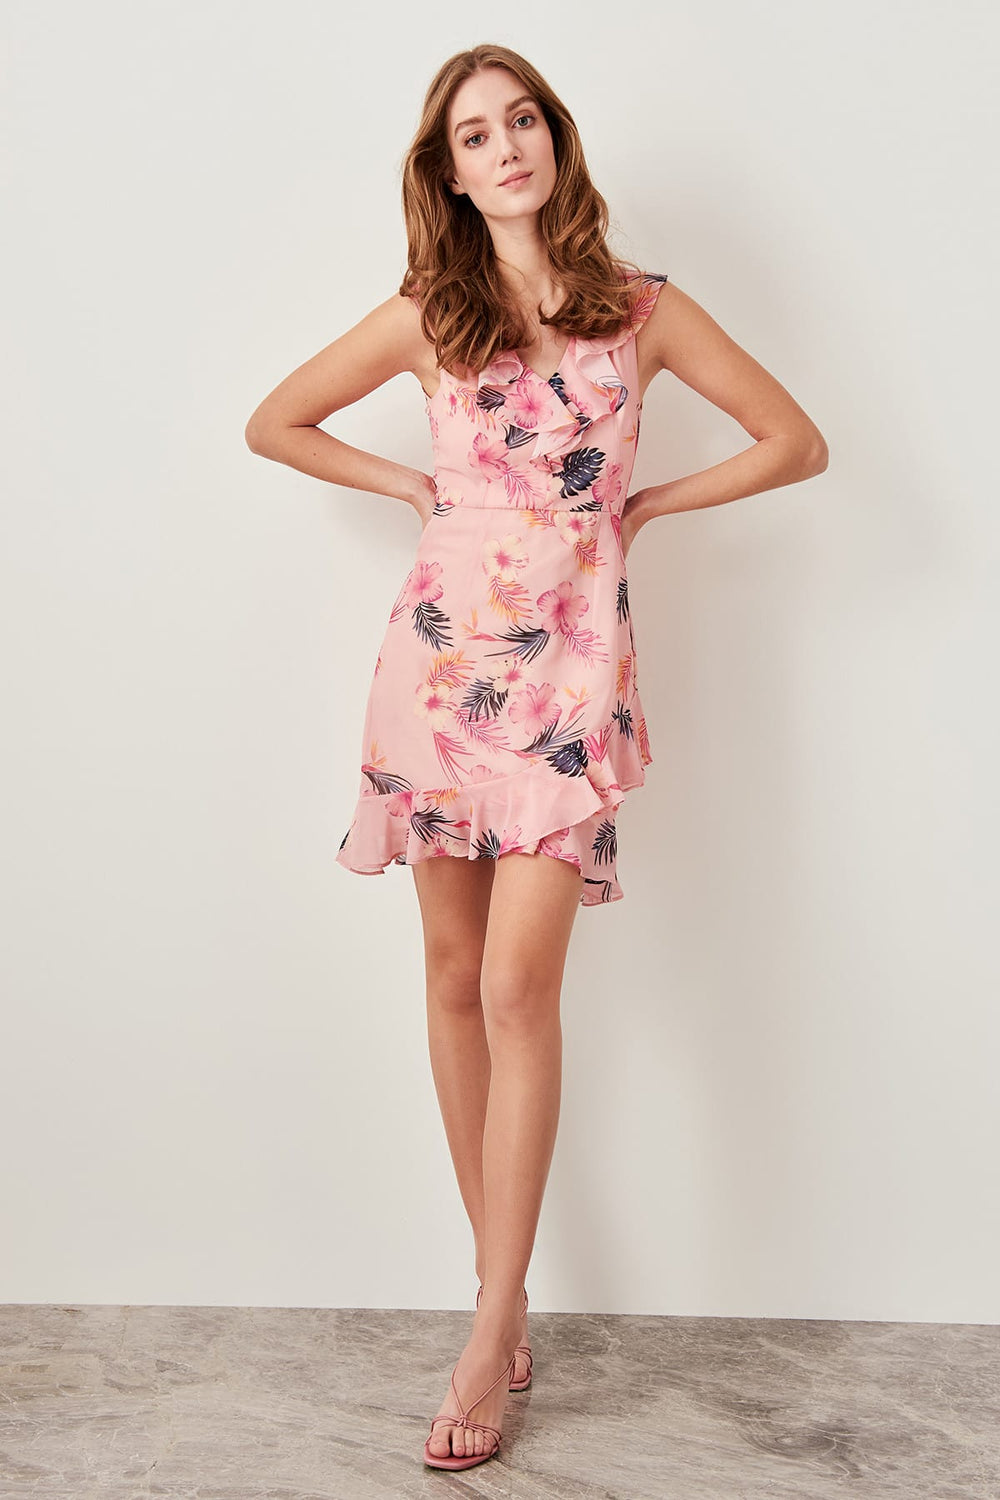 Pink Floral Patterned Dress - Top Maxy